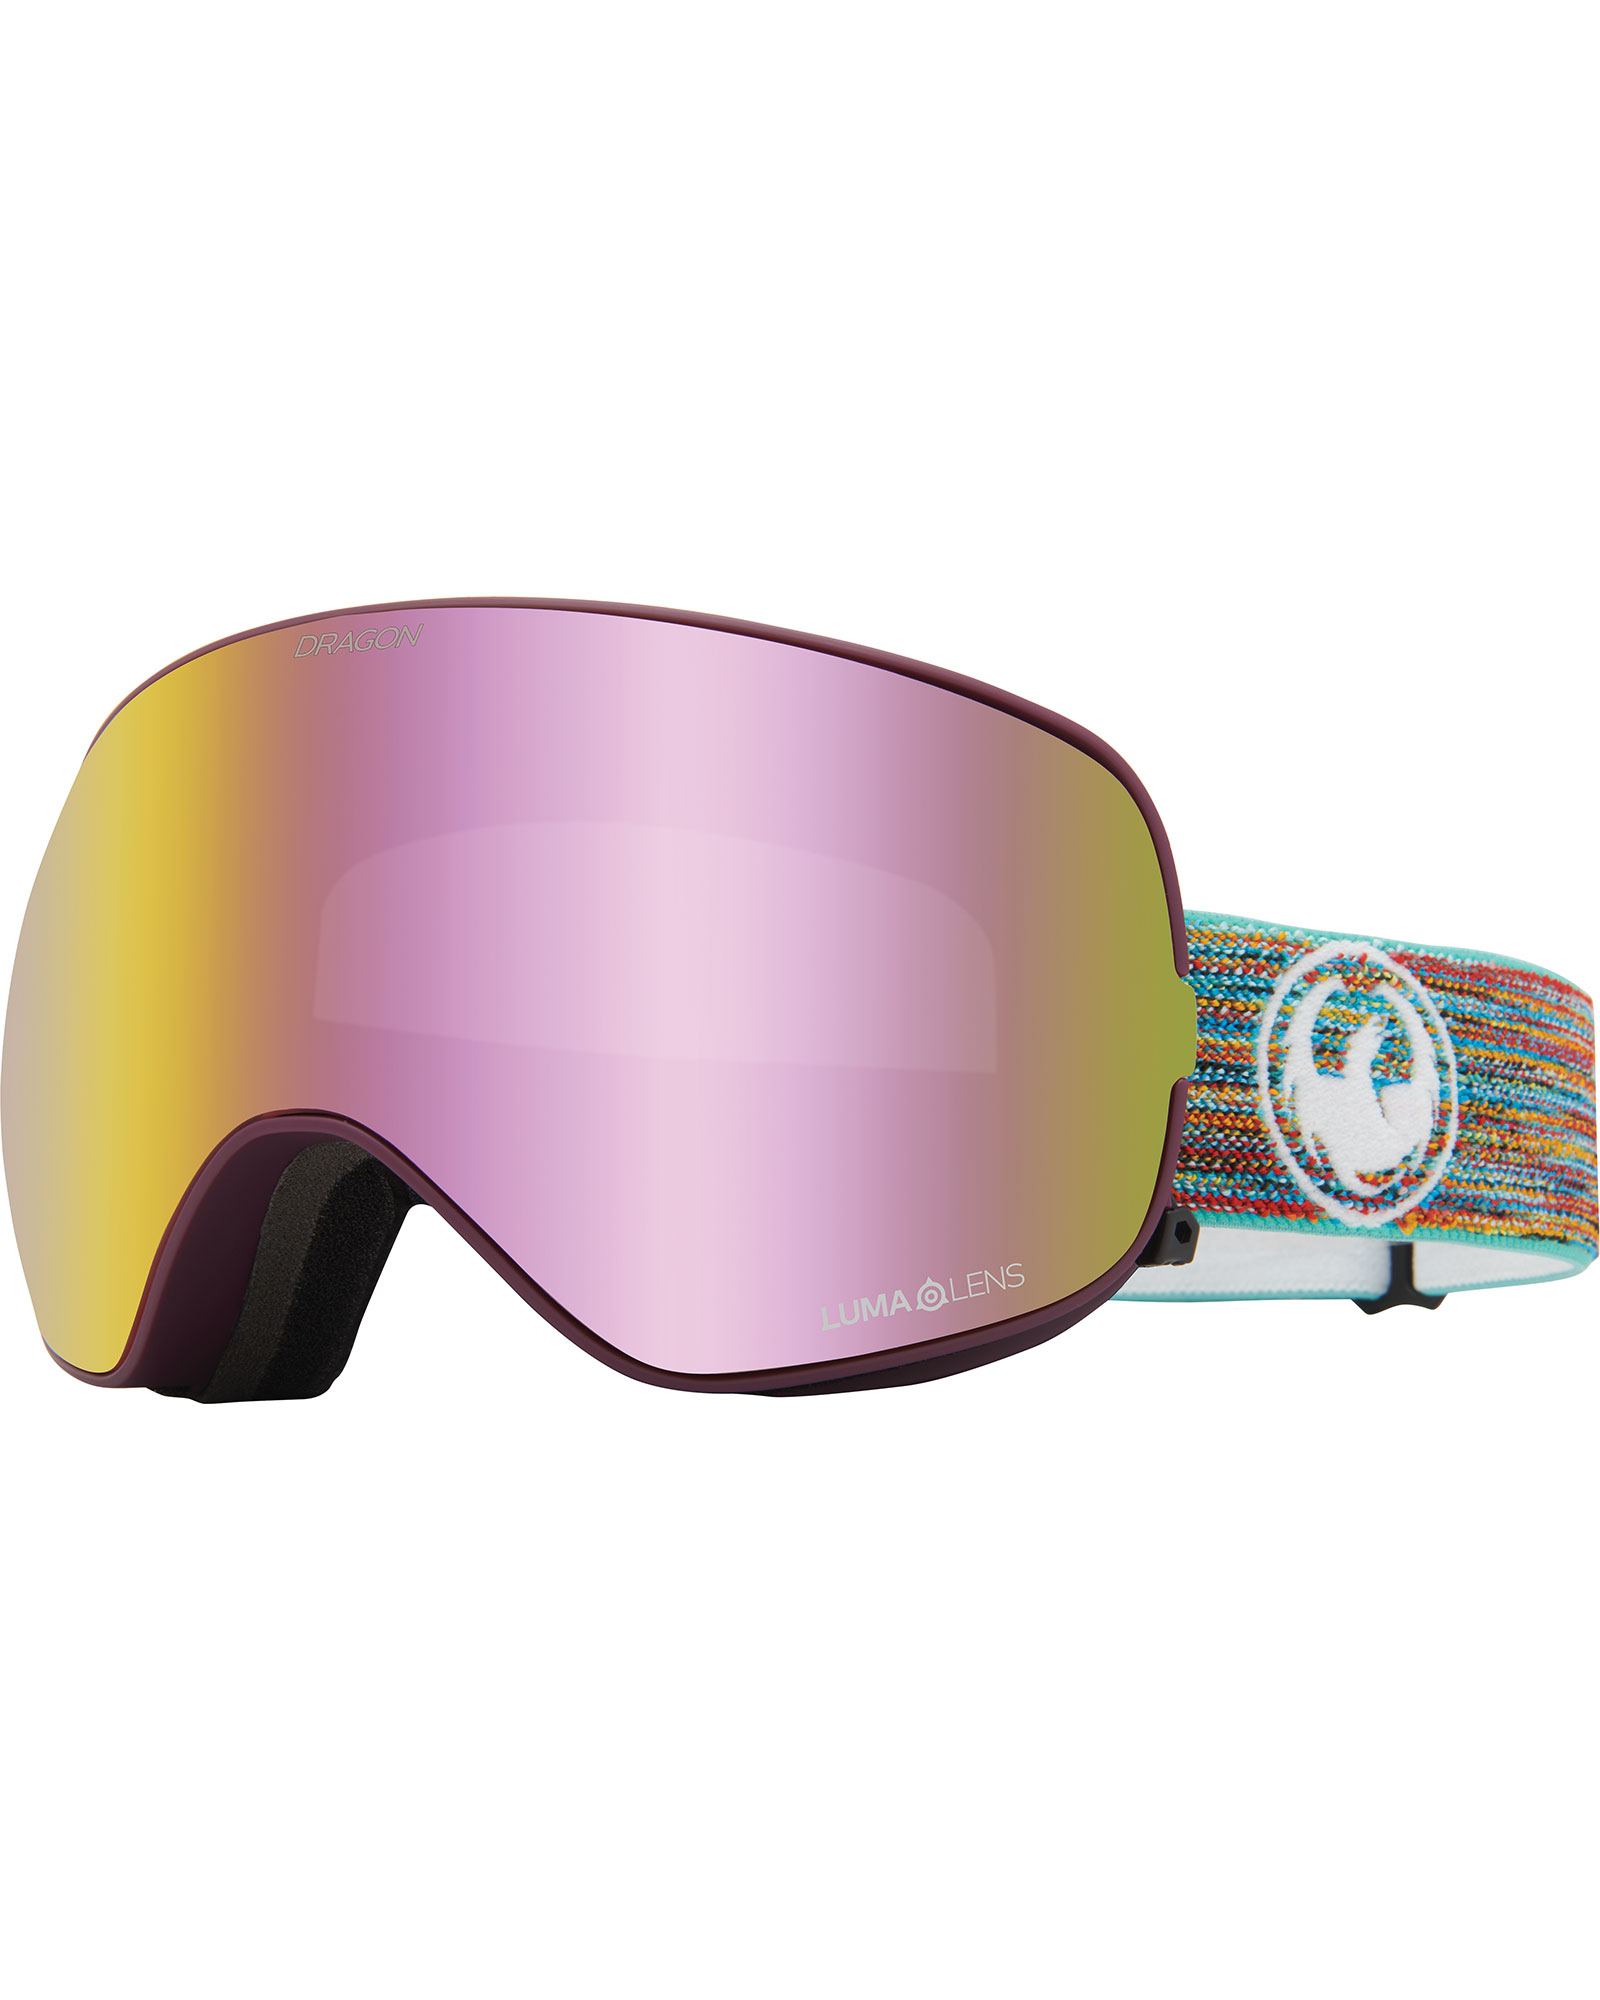 Dragon X2S Shred Together / Lumalens Pink Ionized + Lumalens Dark Smoke Goggles 2020 / 2021 0